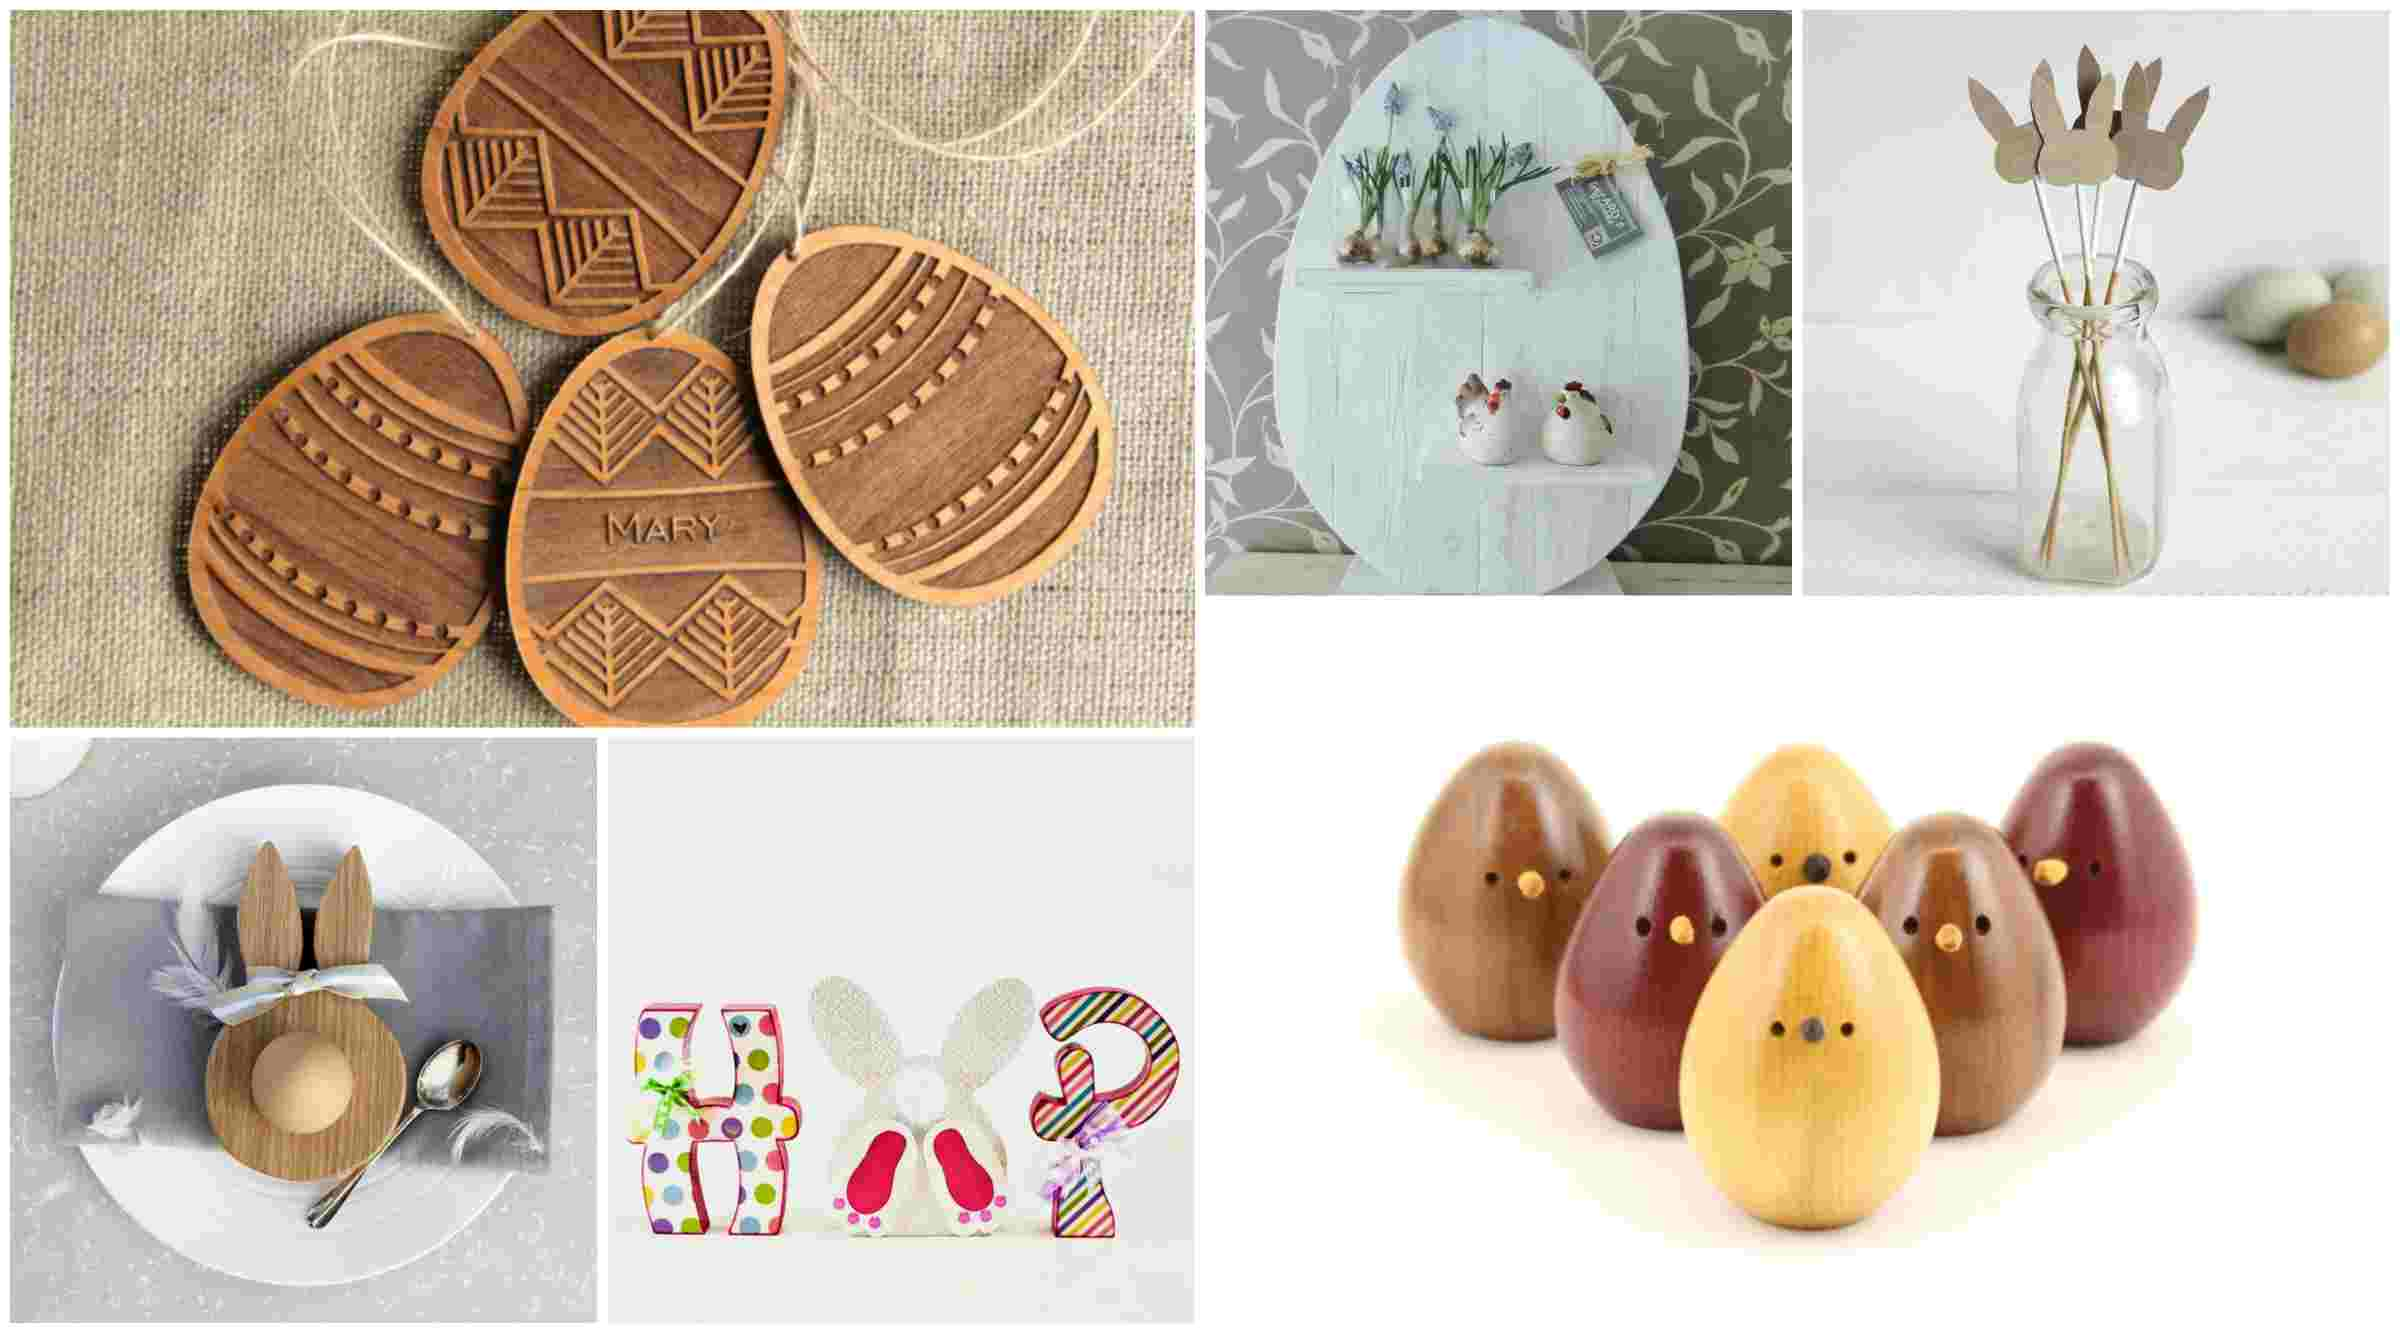 Easter decorations made of wood